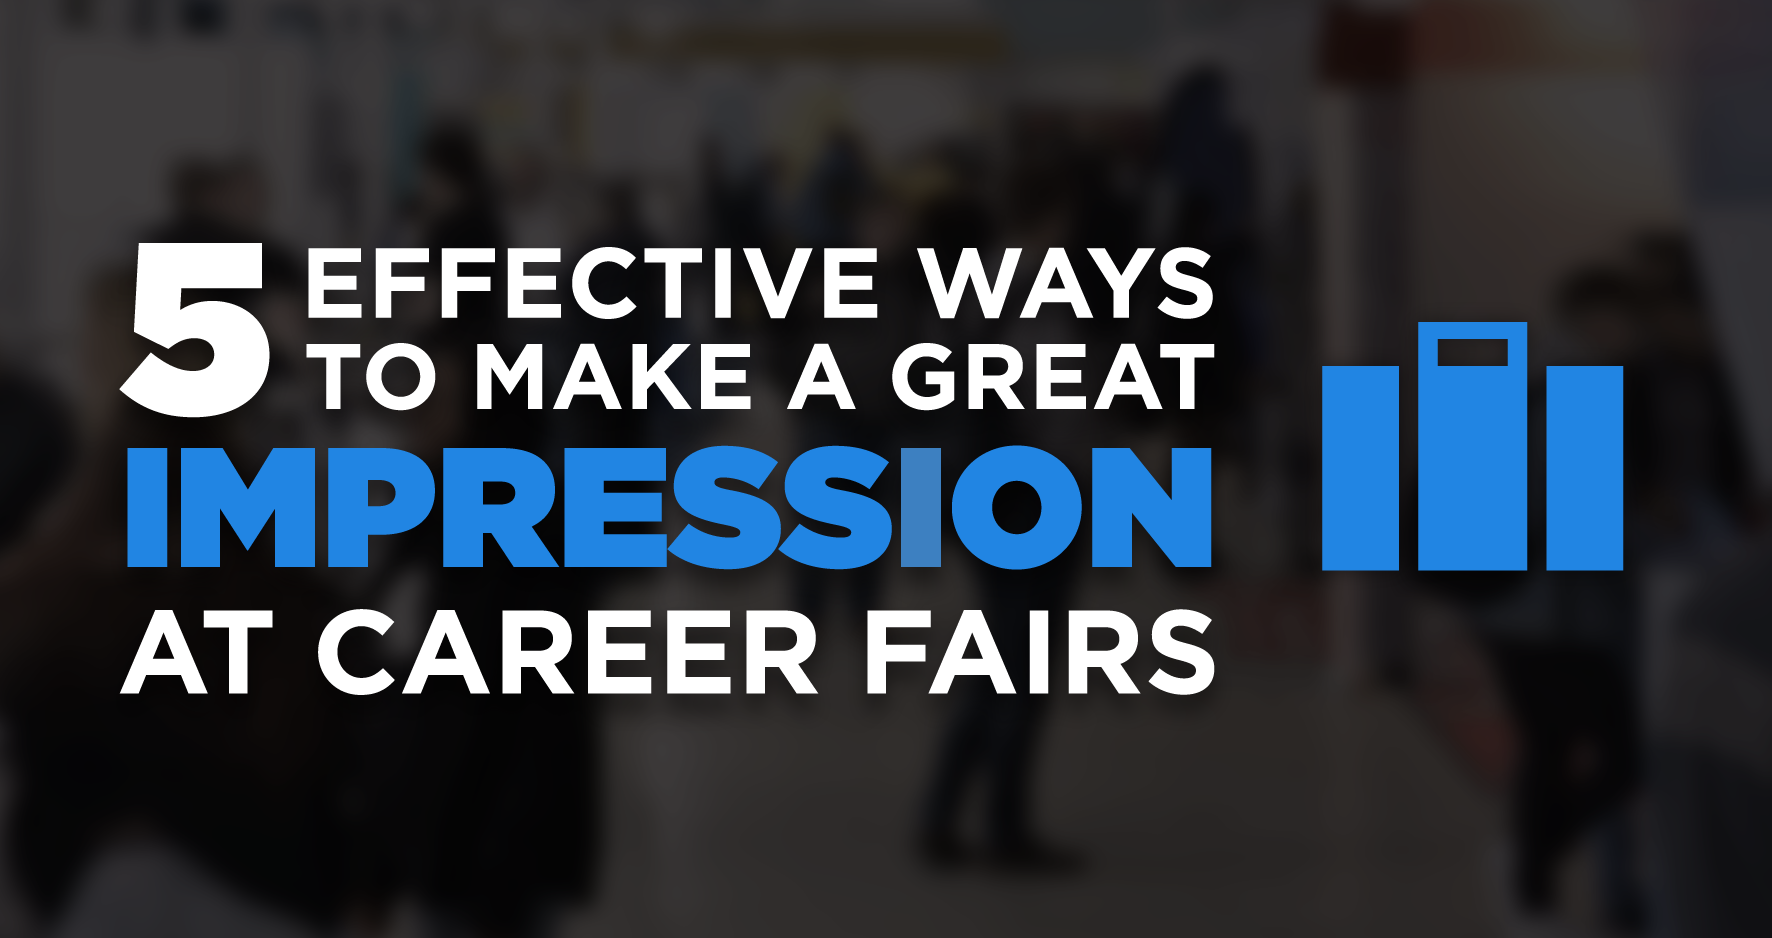 5 effective ways to make a great impression at career fairs